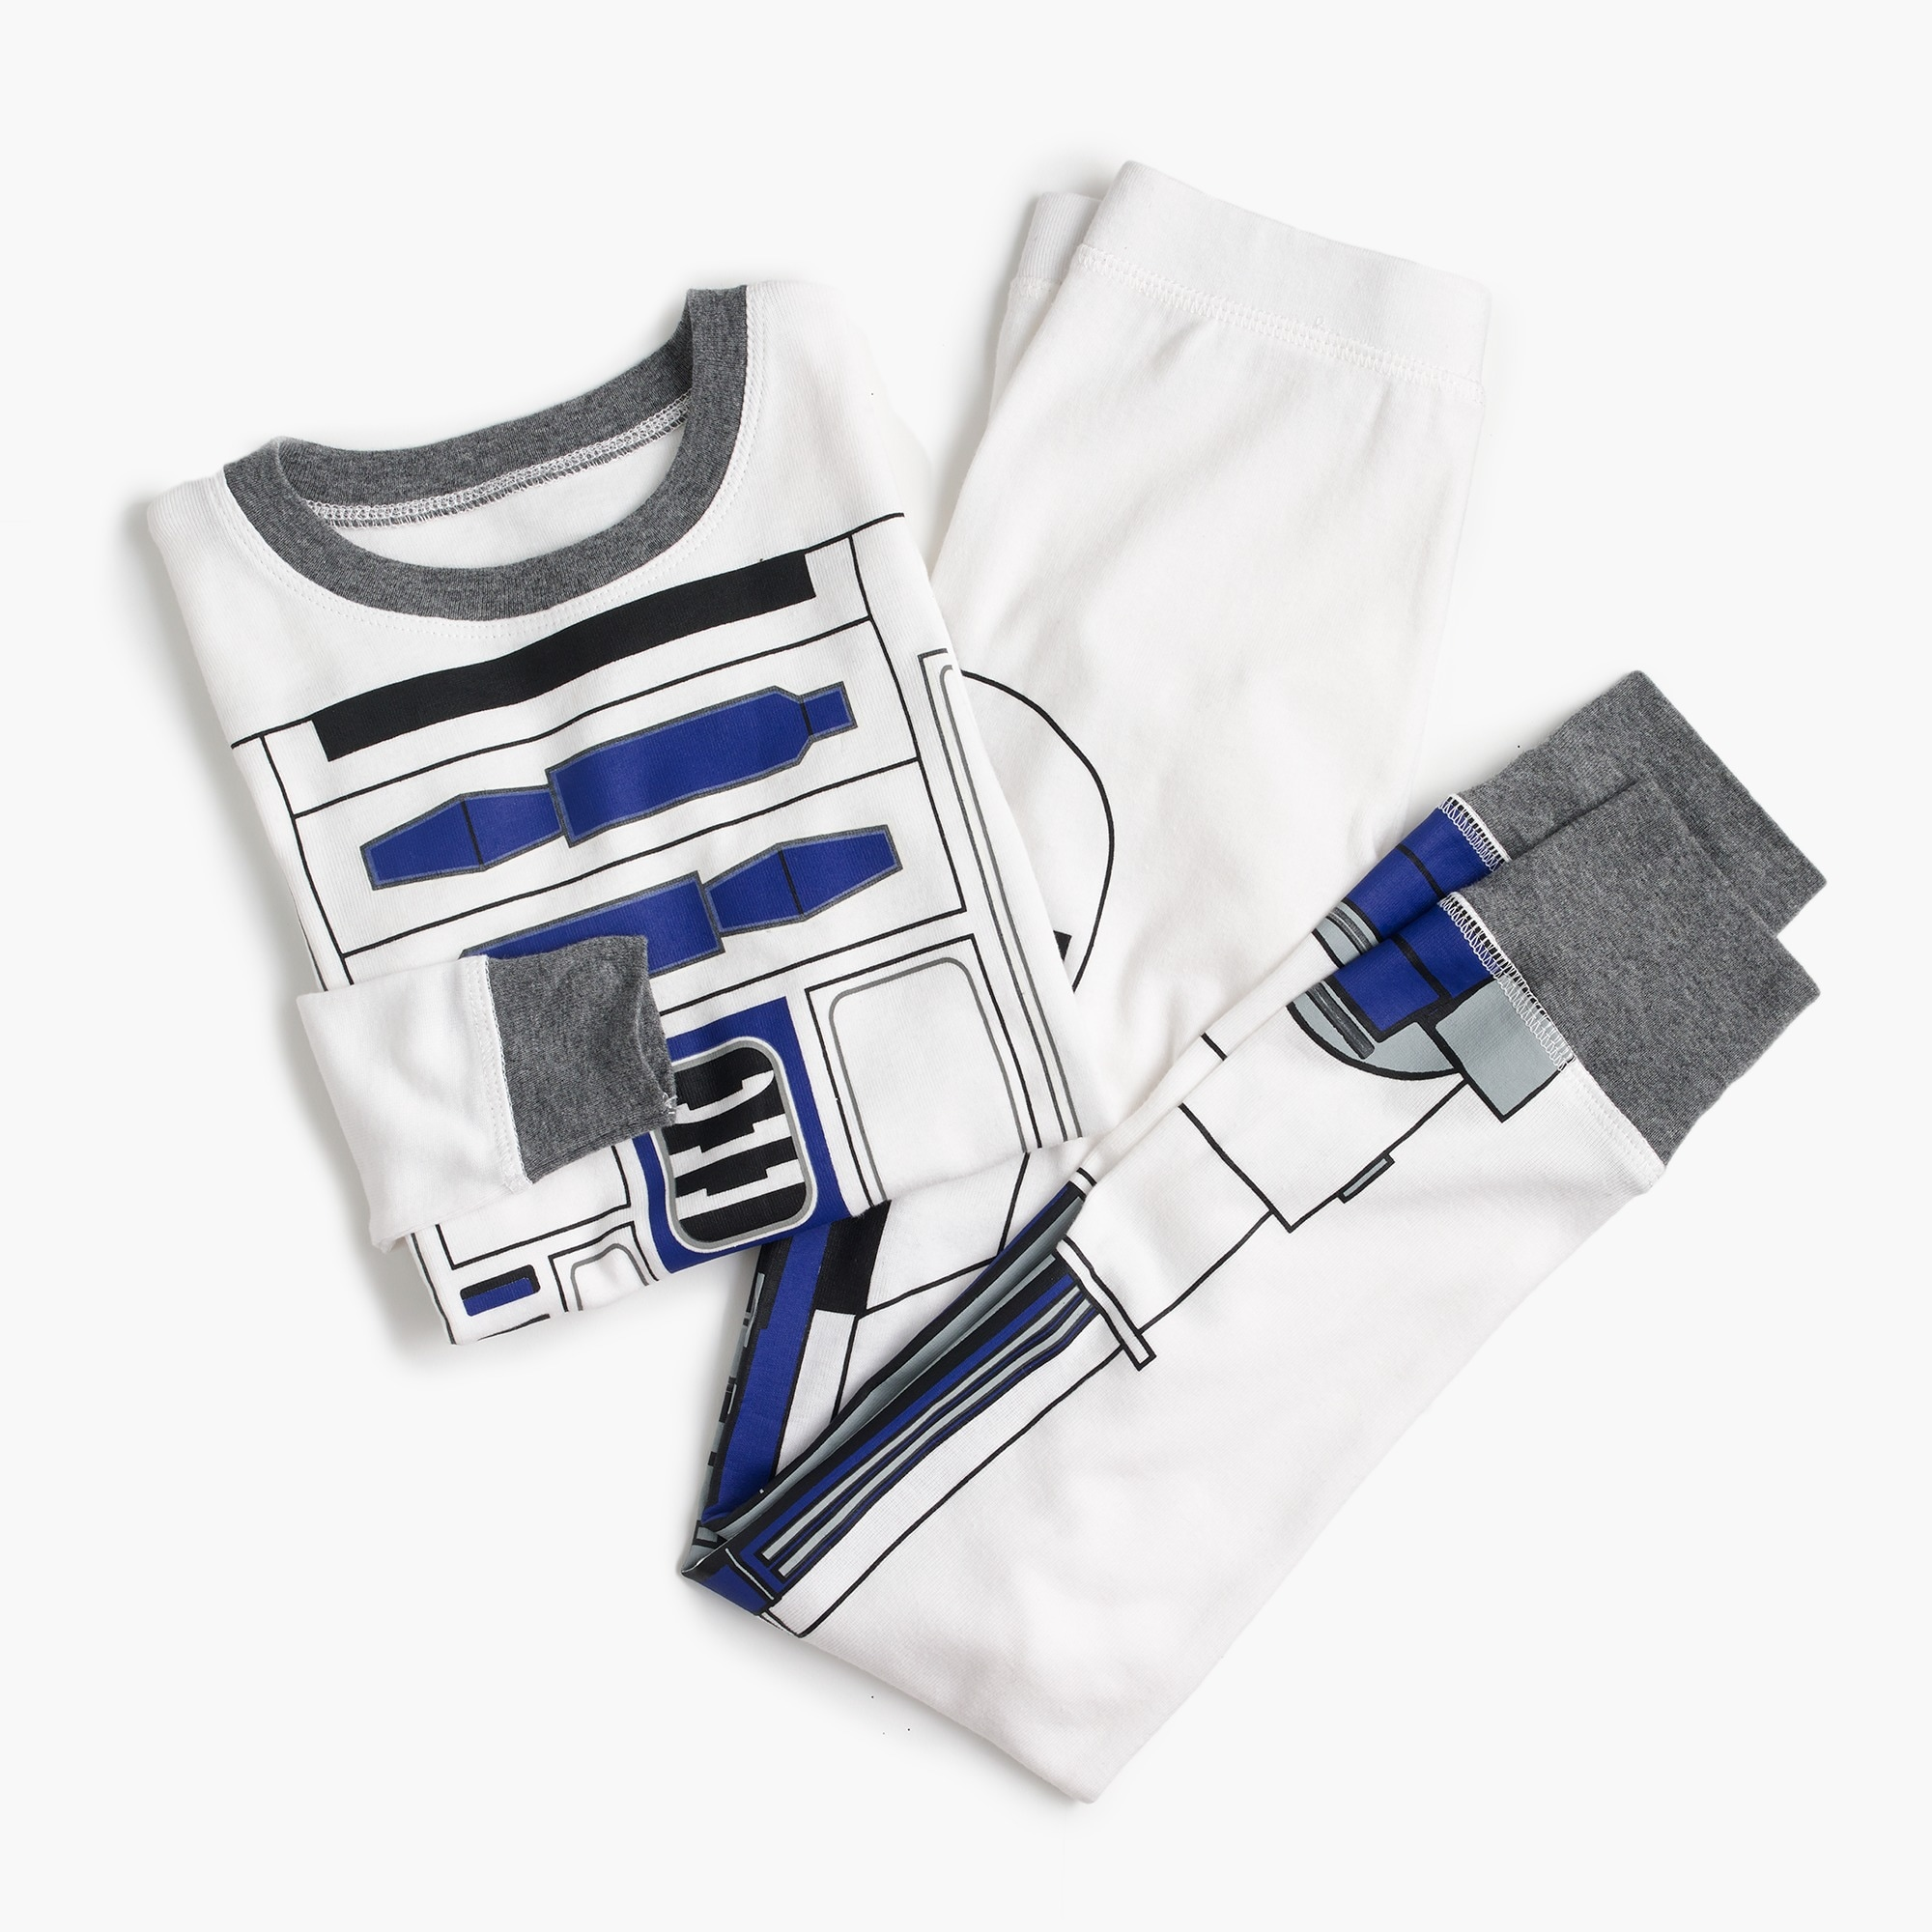 Kids' Star Wars ™ for crewcuts R2-D2 pajama set boy pajamas c